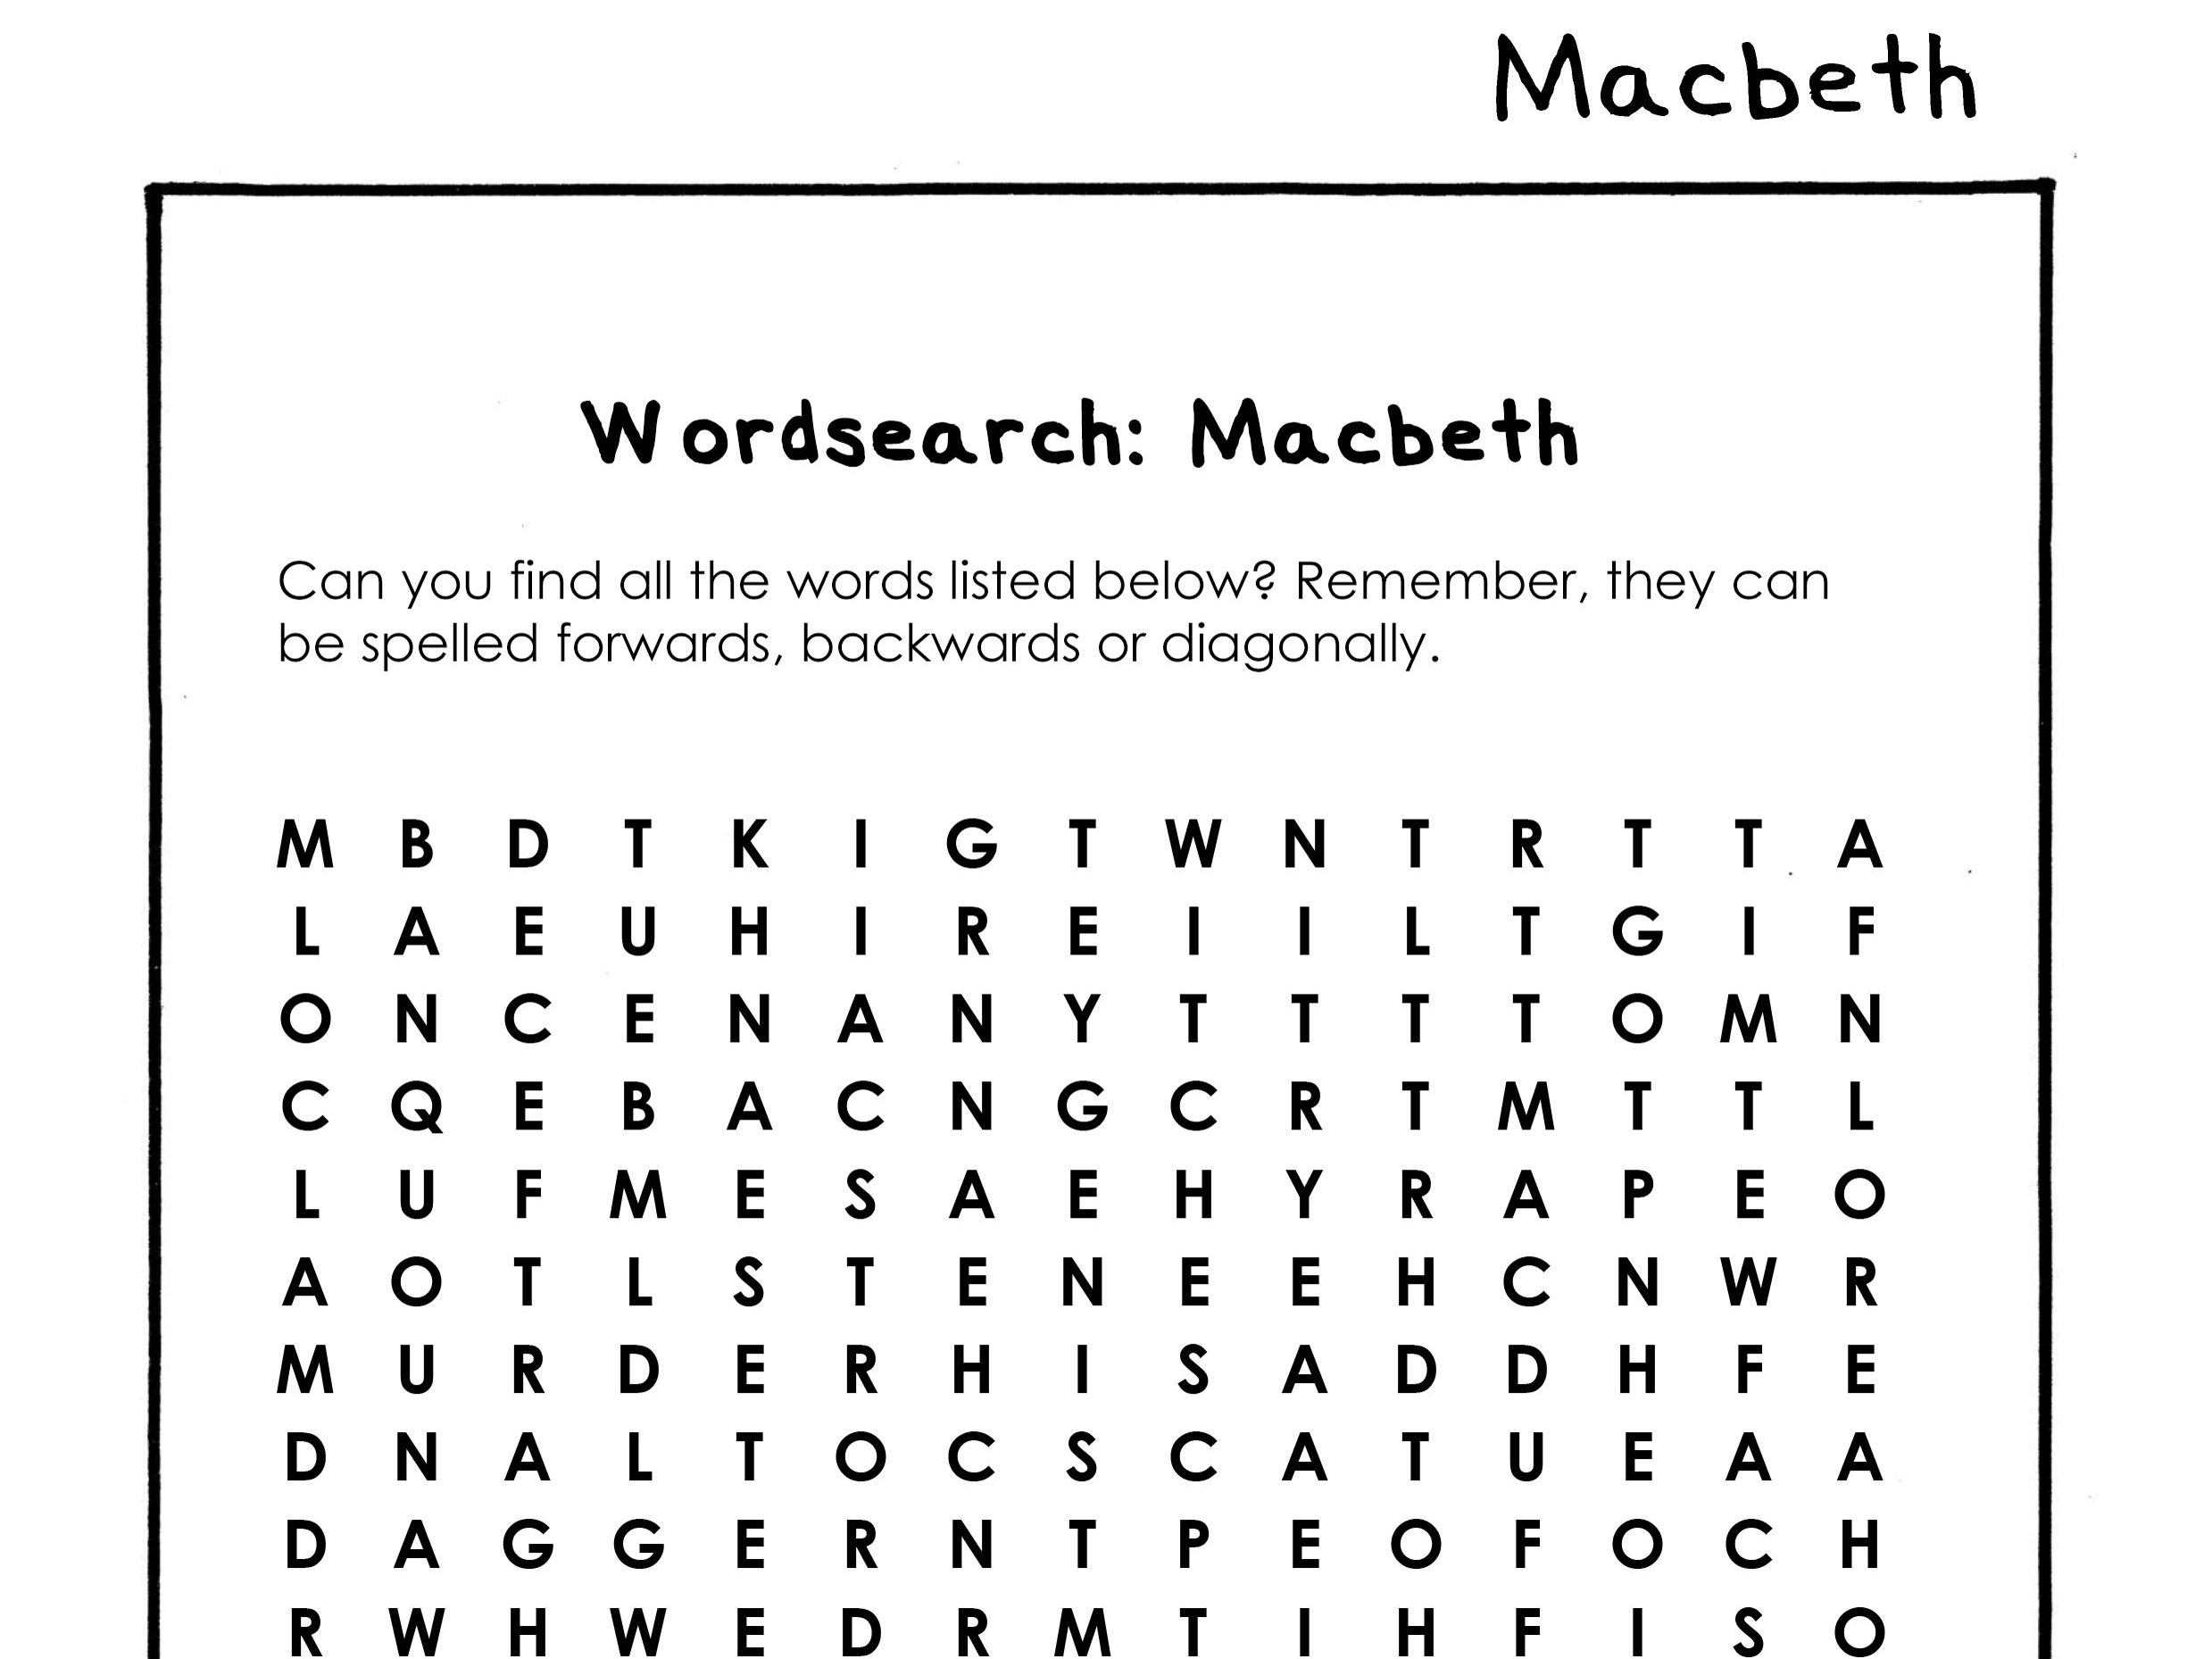 Macbeth Wordsearch